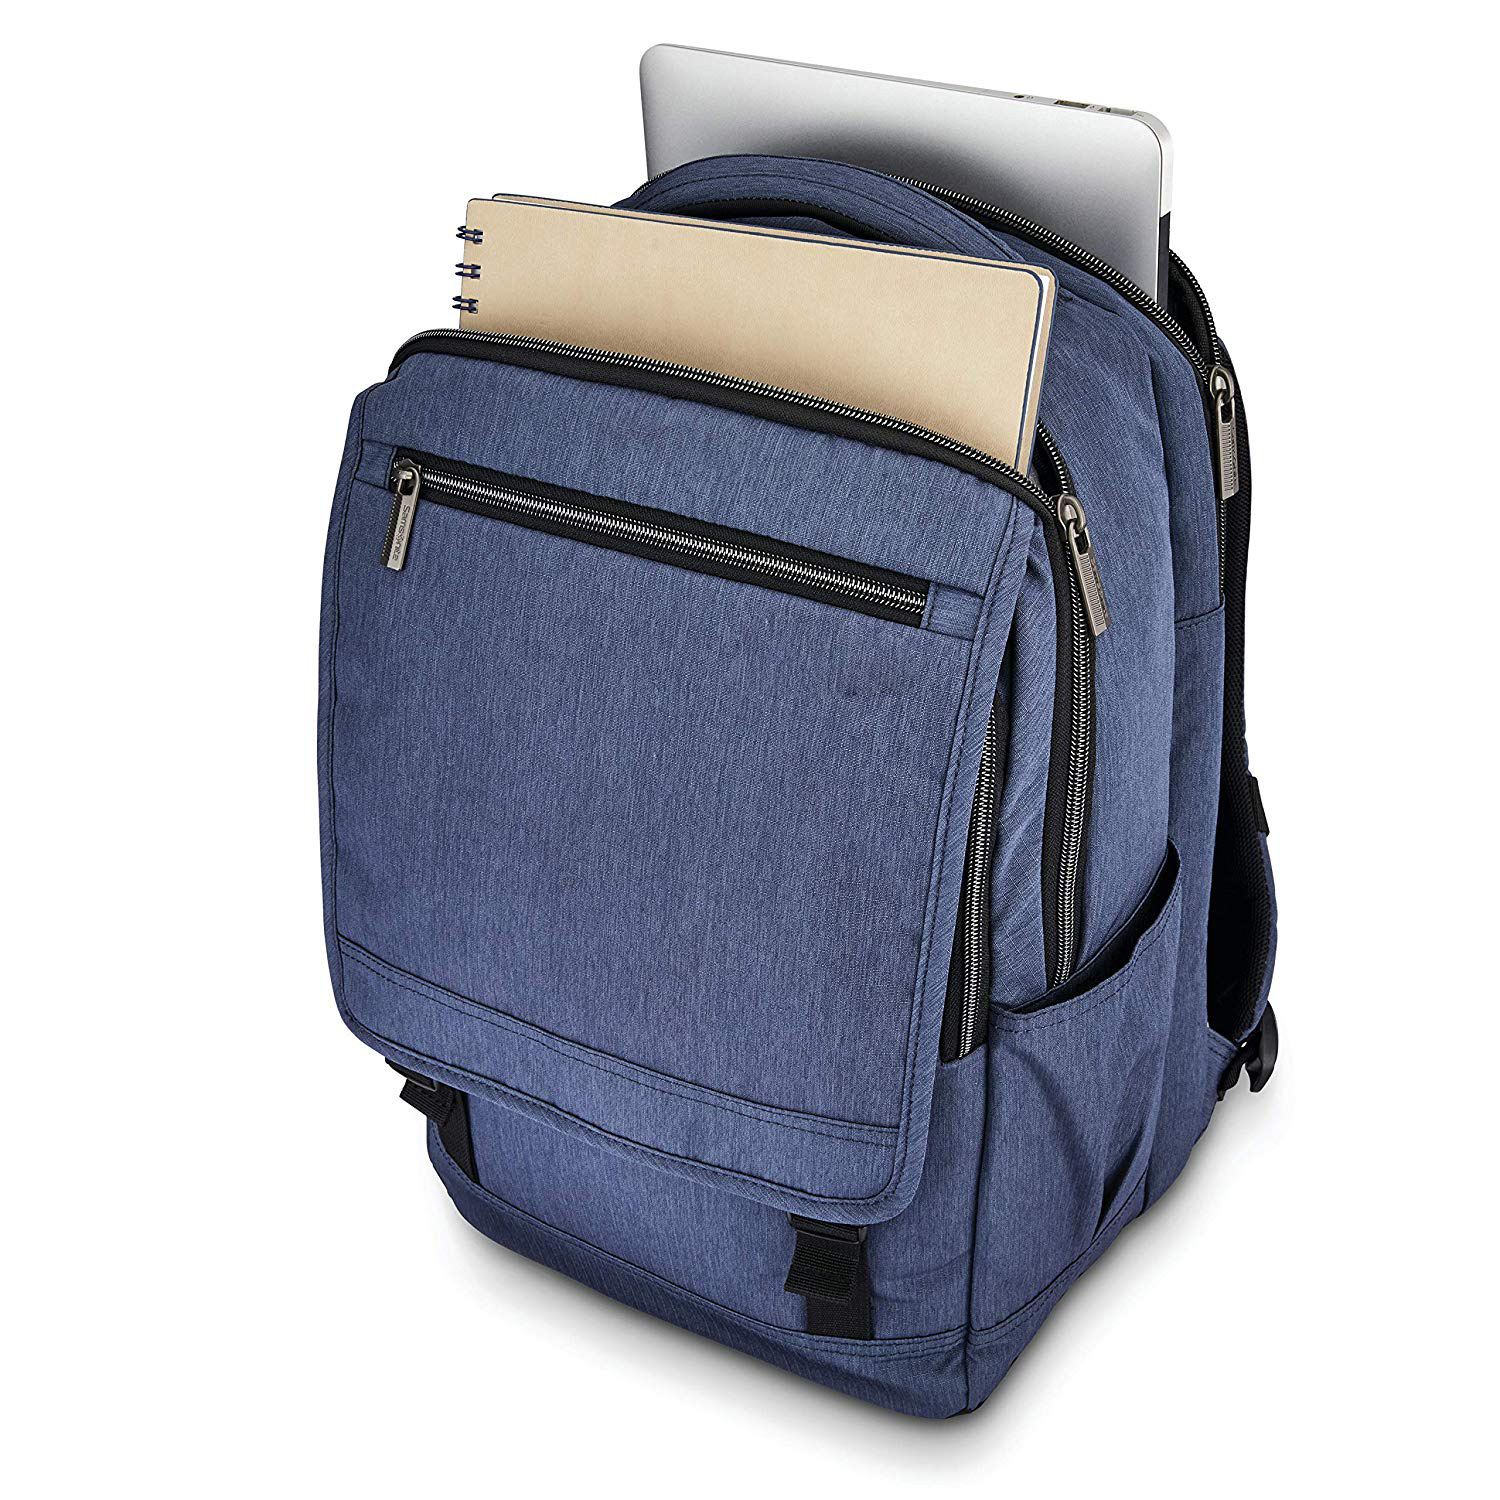 Modern Utility Paracycle Backpack Laptop, Charcoal Heather, One Size